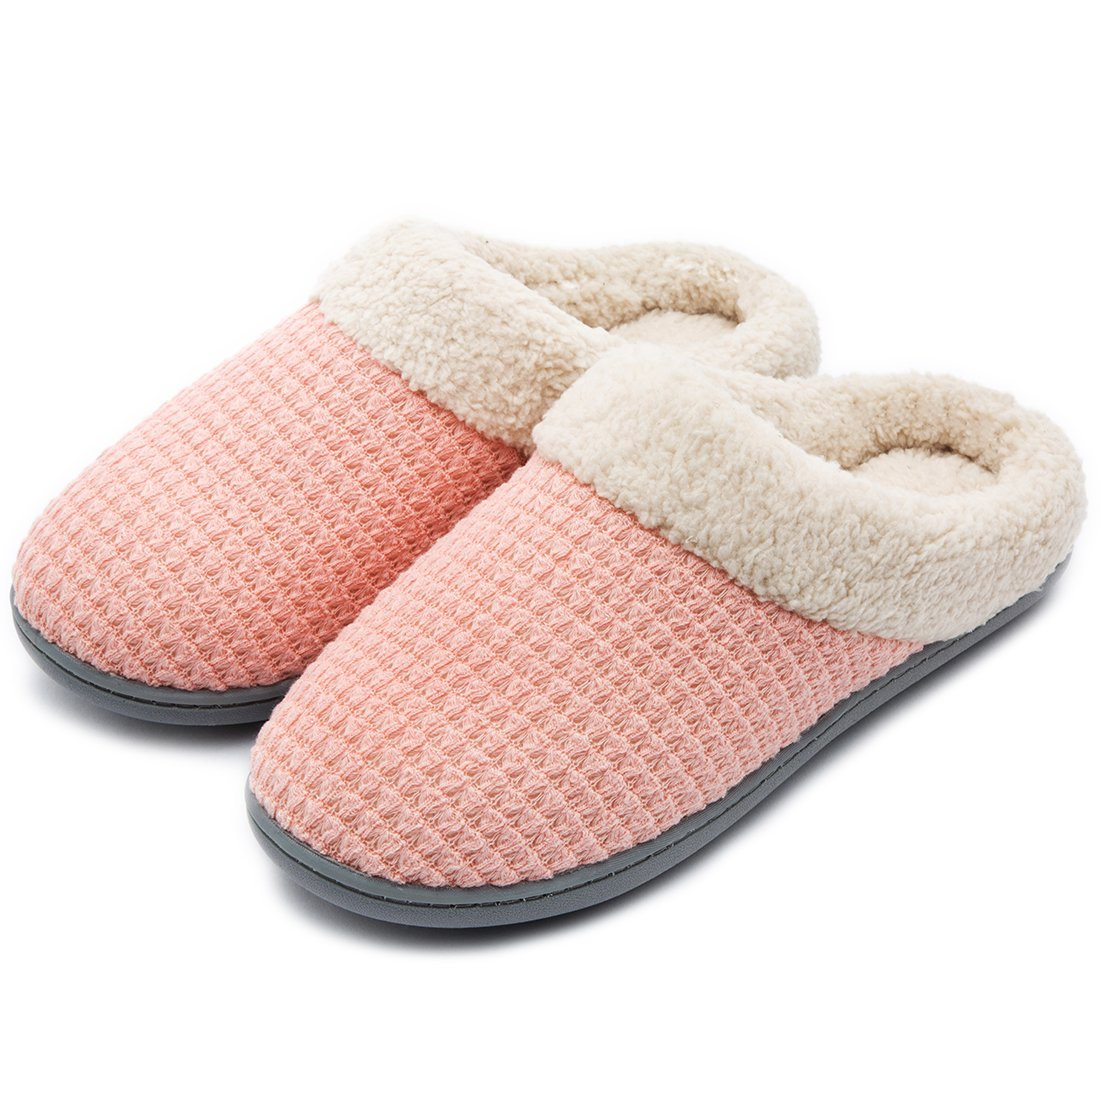 ULTRAIDEAS Women's Comfort Coral Fleece Memory Foam Slippers Plush Lining Slip-on Clog House Shoes for Indoor & Outdoor Use (Small/5-6 B(M) US, Pink Knit)